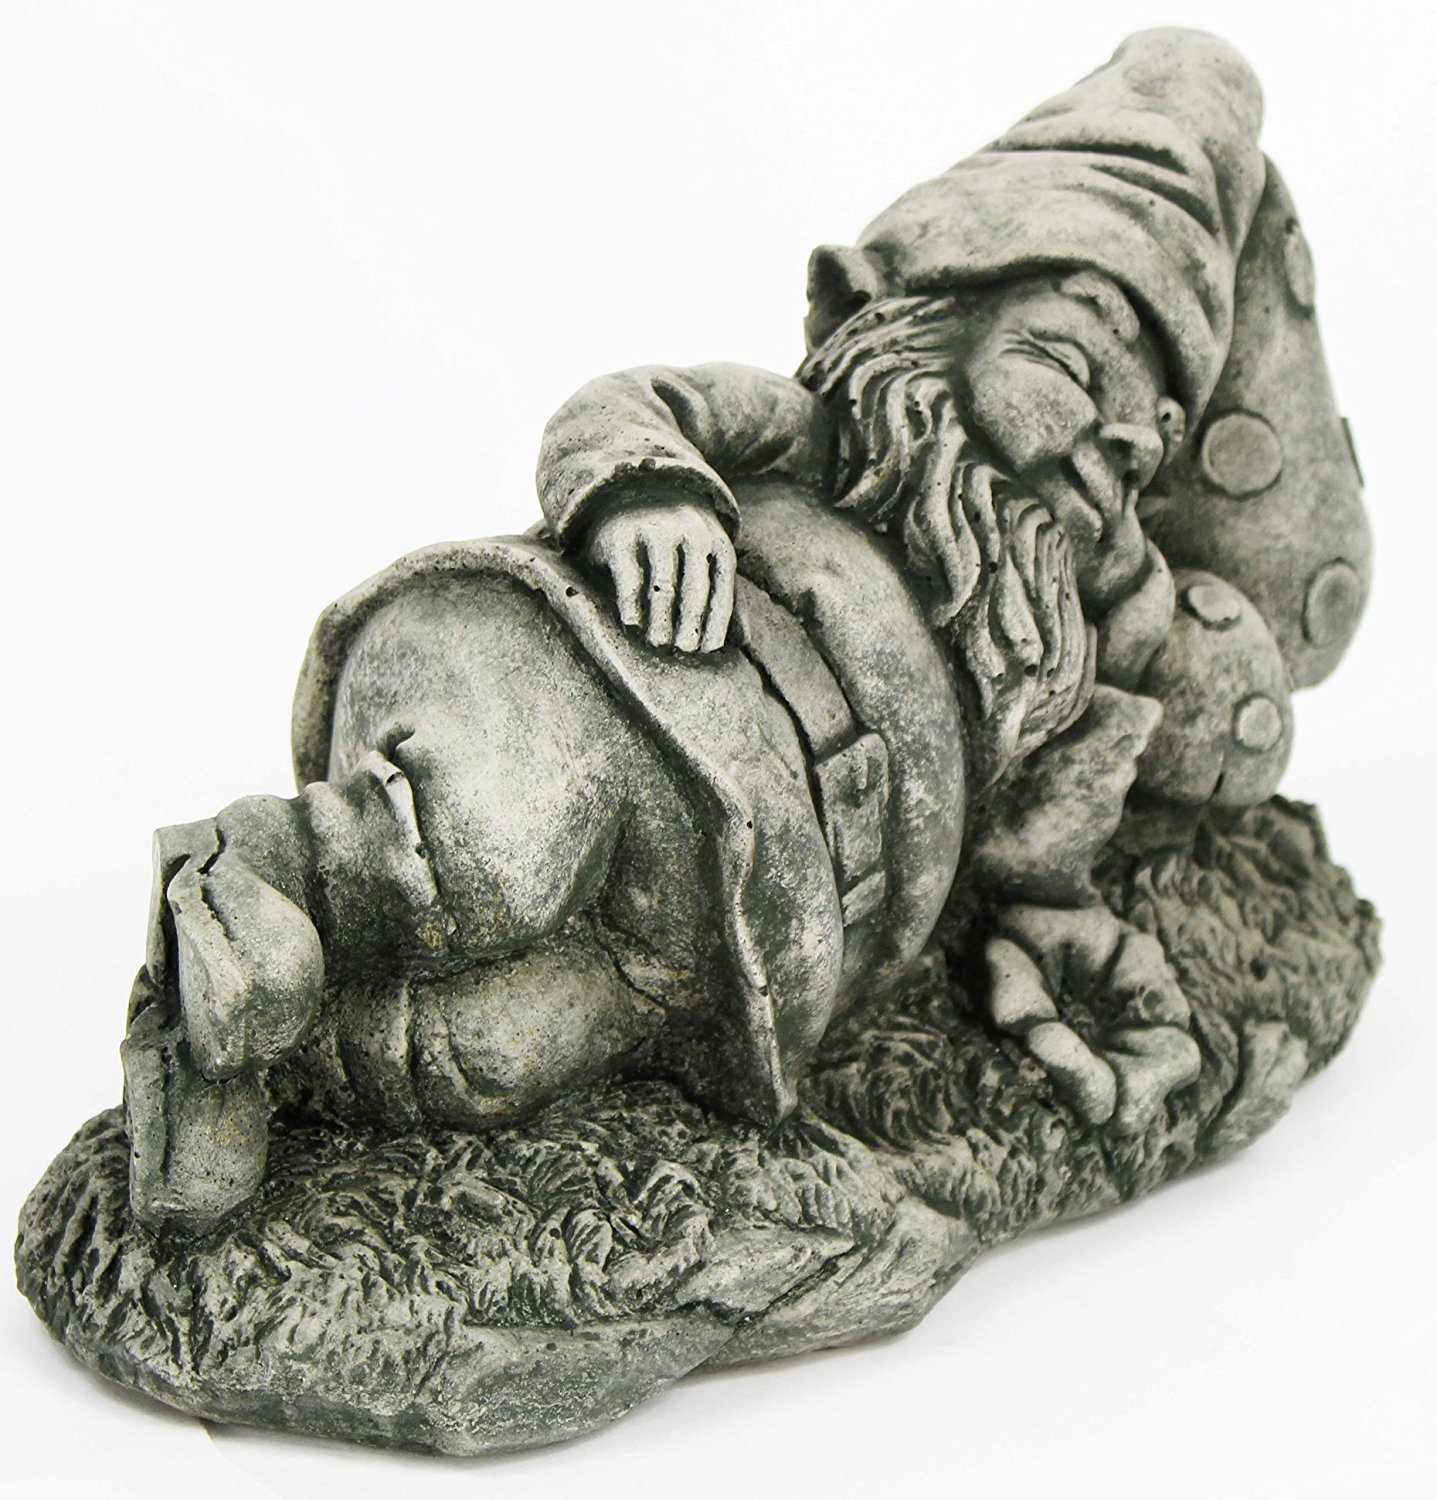 Gnome Sleeping Decorative Concrete Statue Cement Gnome Figure Cast Stone Gnome Sculpture Garden Statue Art Decor